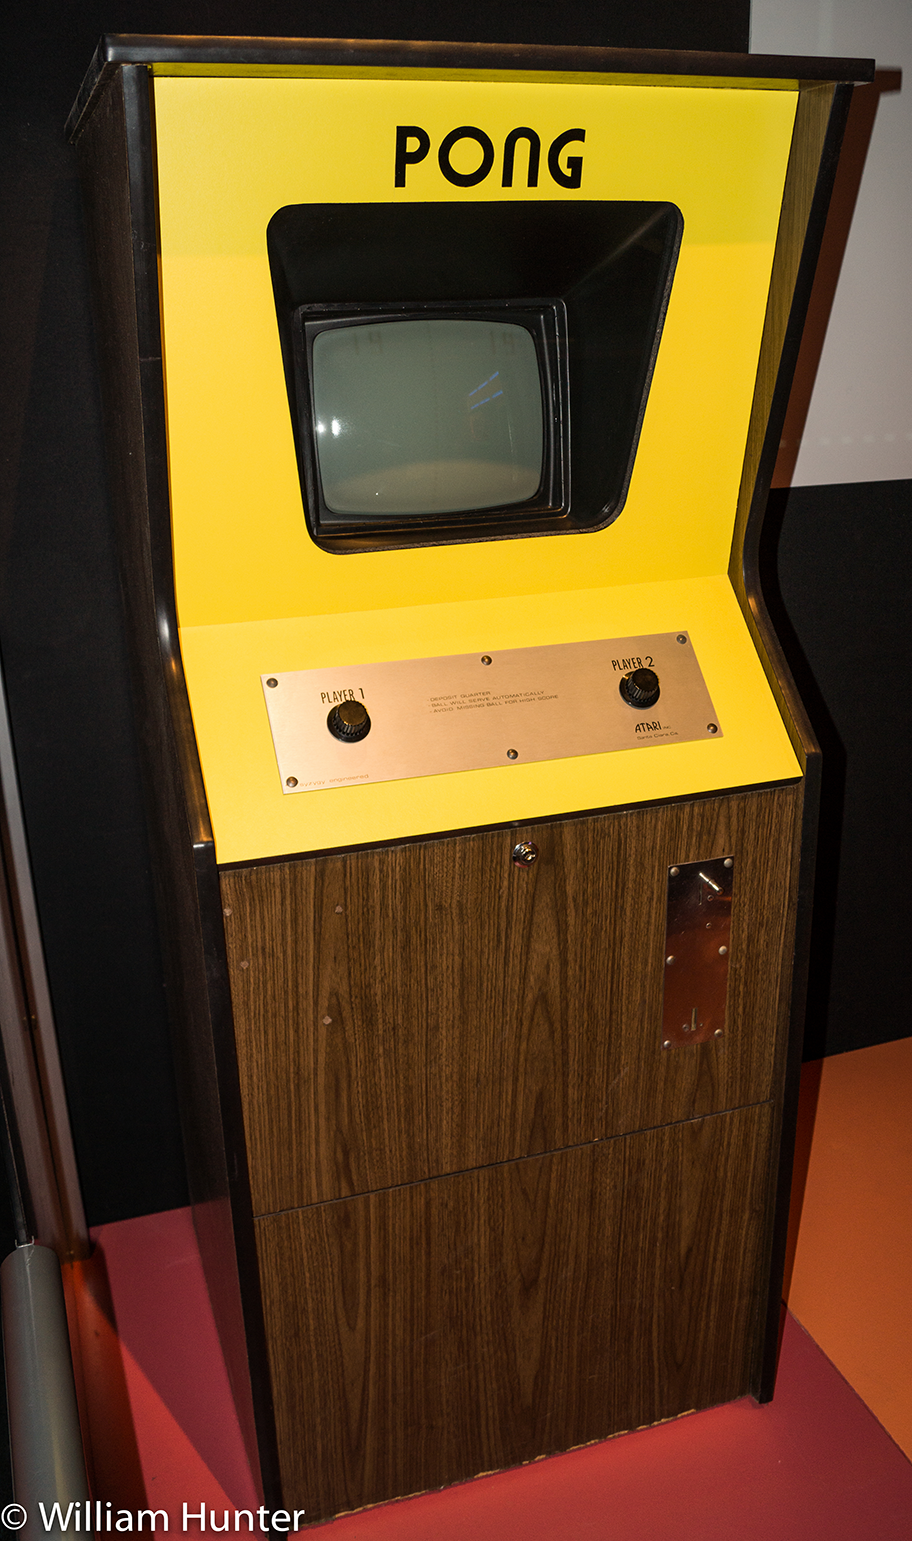 Image of PONG, a coin-op video game by Atari 1972